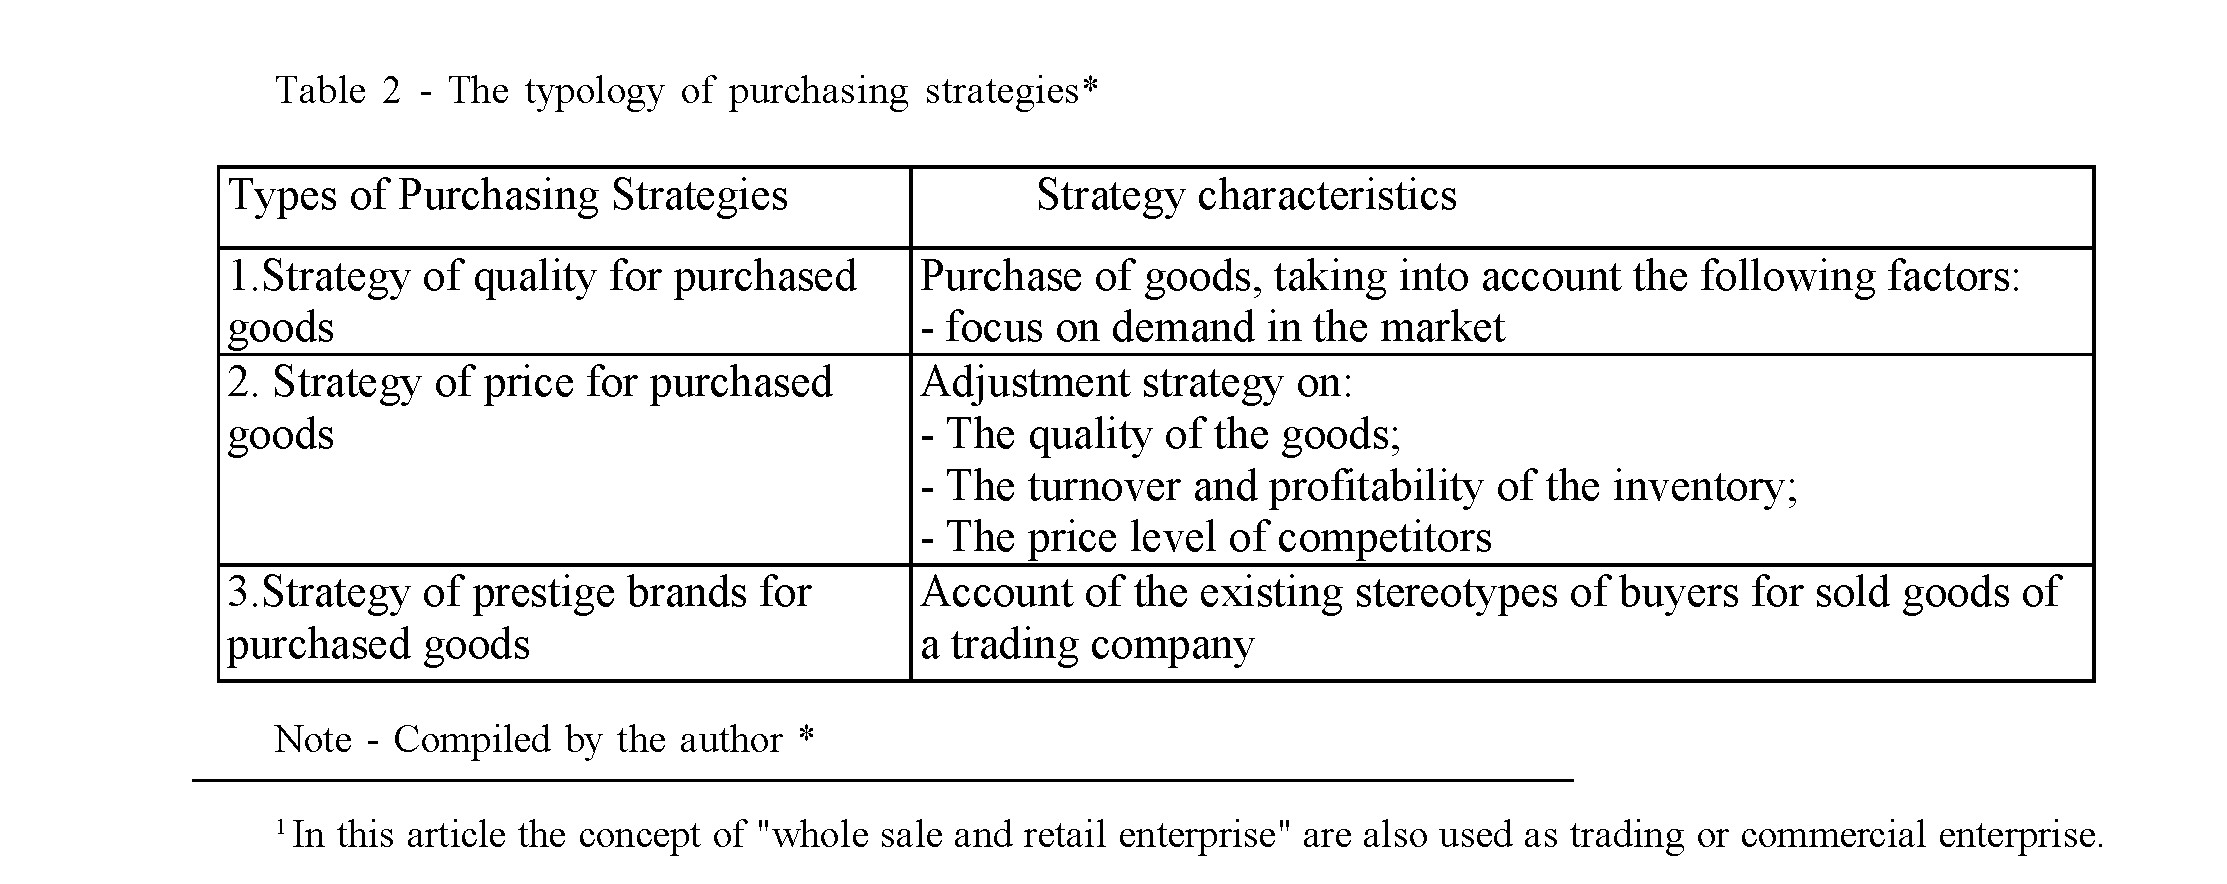 Strategic management tools used in the strategic development of wholesale and retail trade enterprise